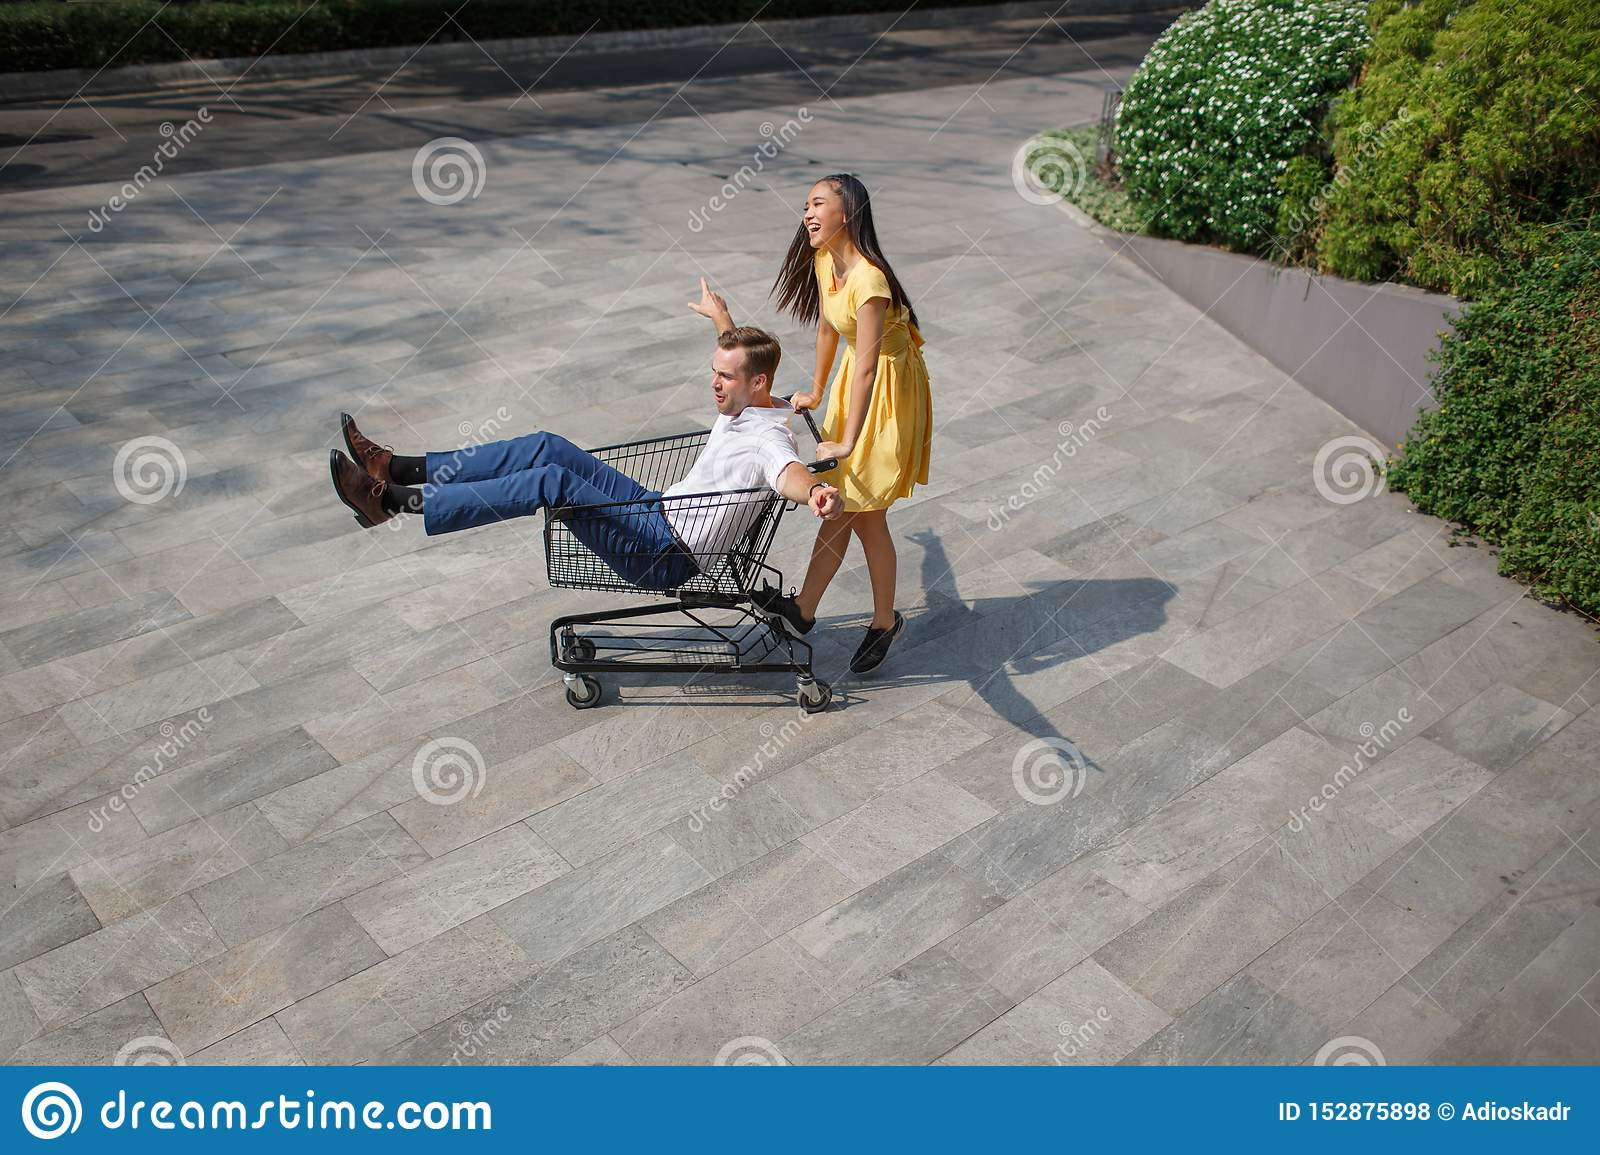 Asian girl and caucasian man together having fun on the street